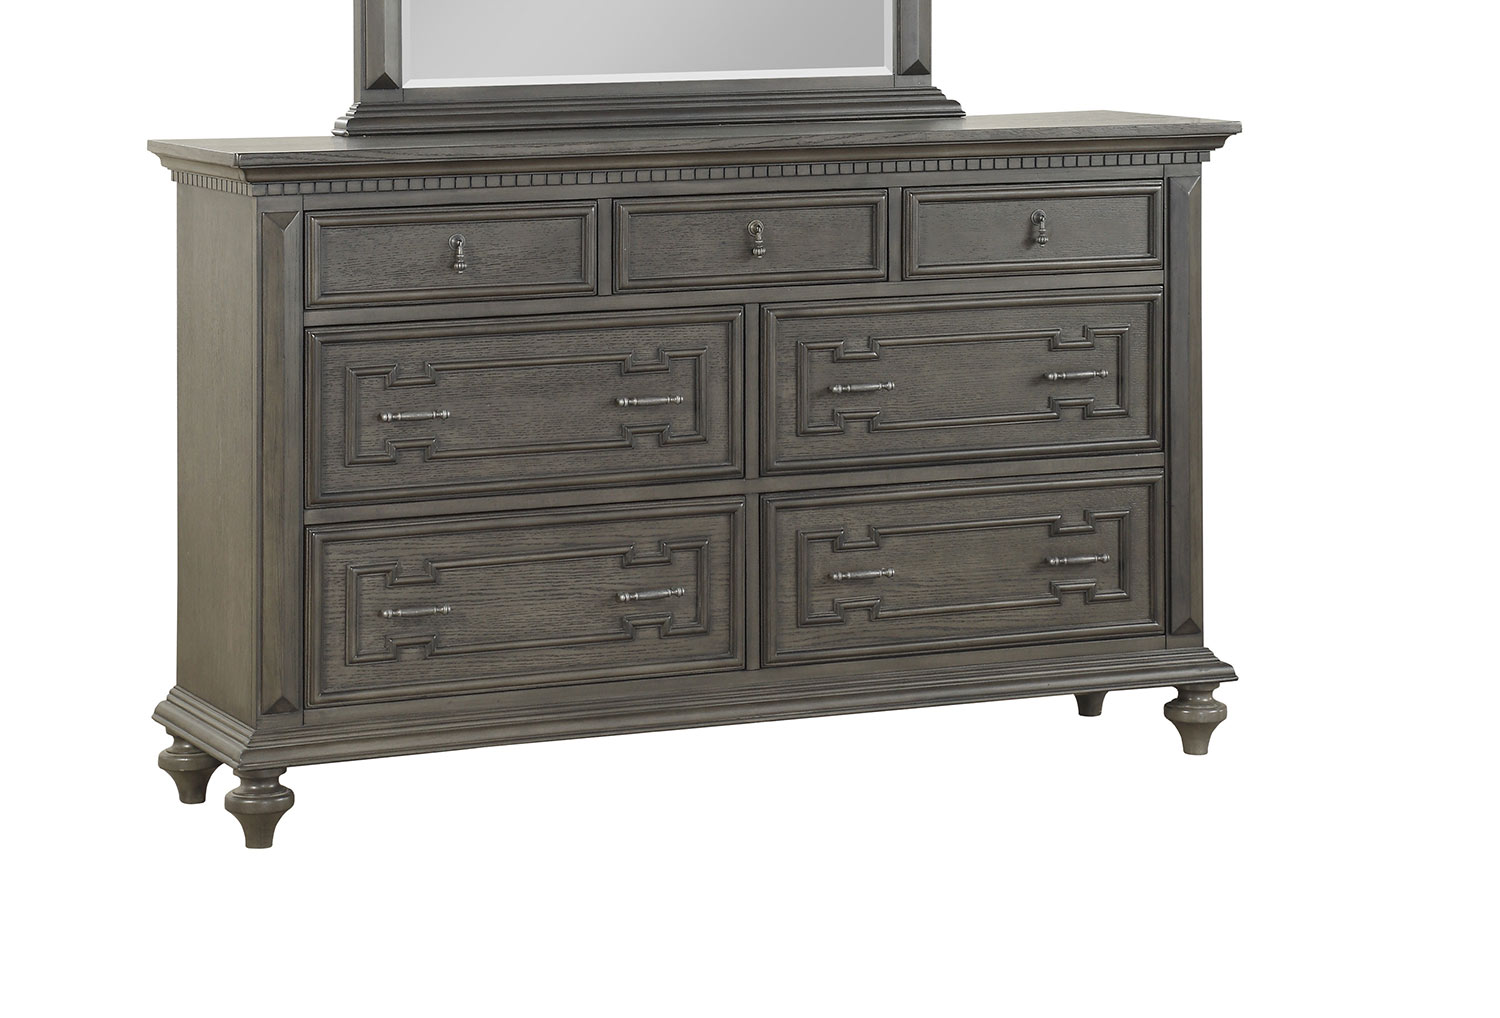 Homelegance Hillridge Dresser